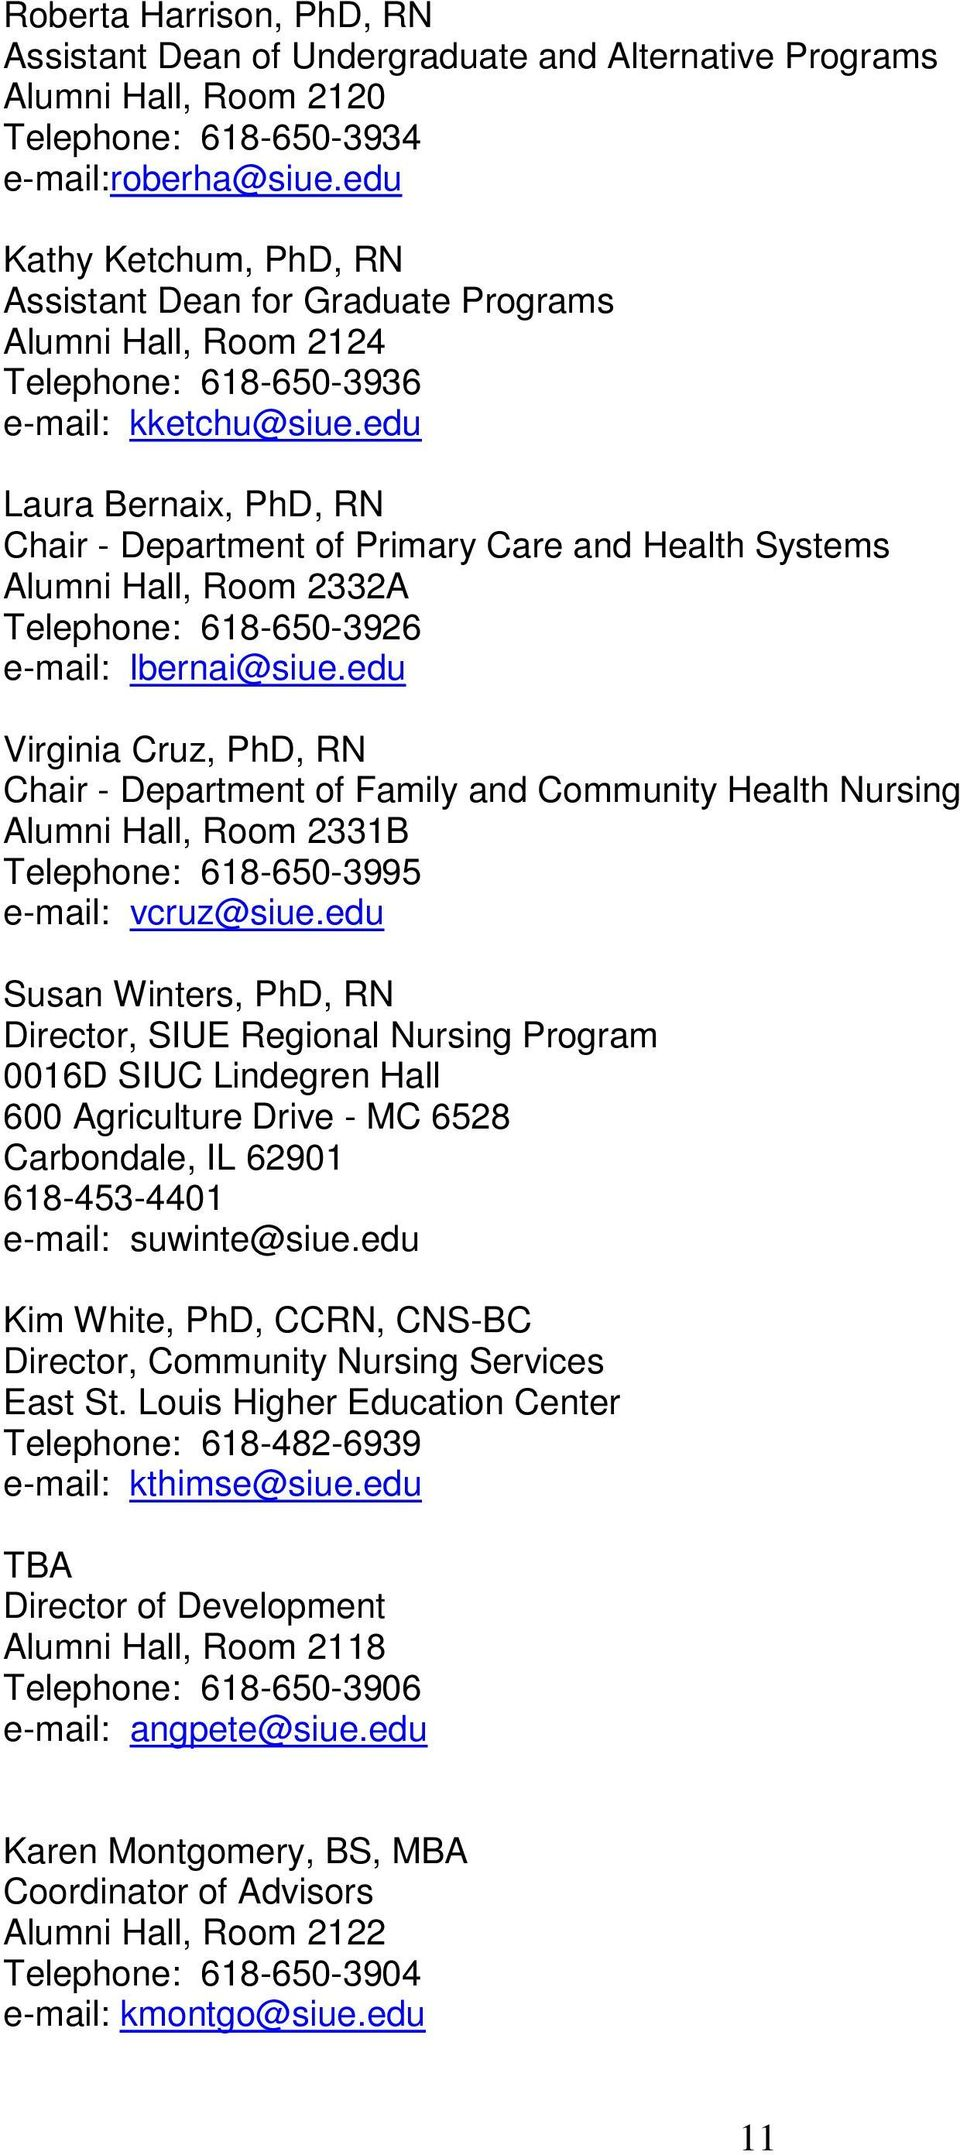 edu Laura Bernaix, PhD, RN Chair - Department of Primary Care and Health Systems Alumni Hall, Room 2332A Telephone: 618-650-3926 e-mail: lbernai@siue.